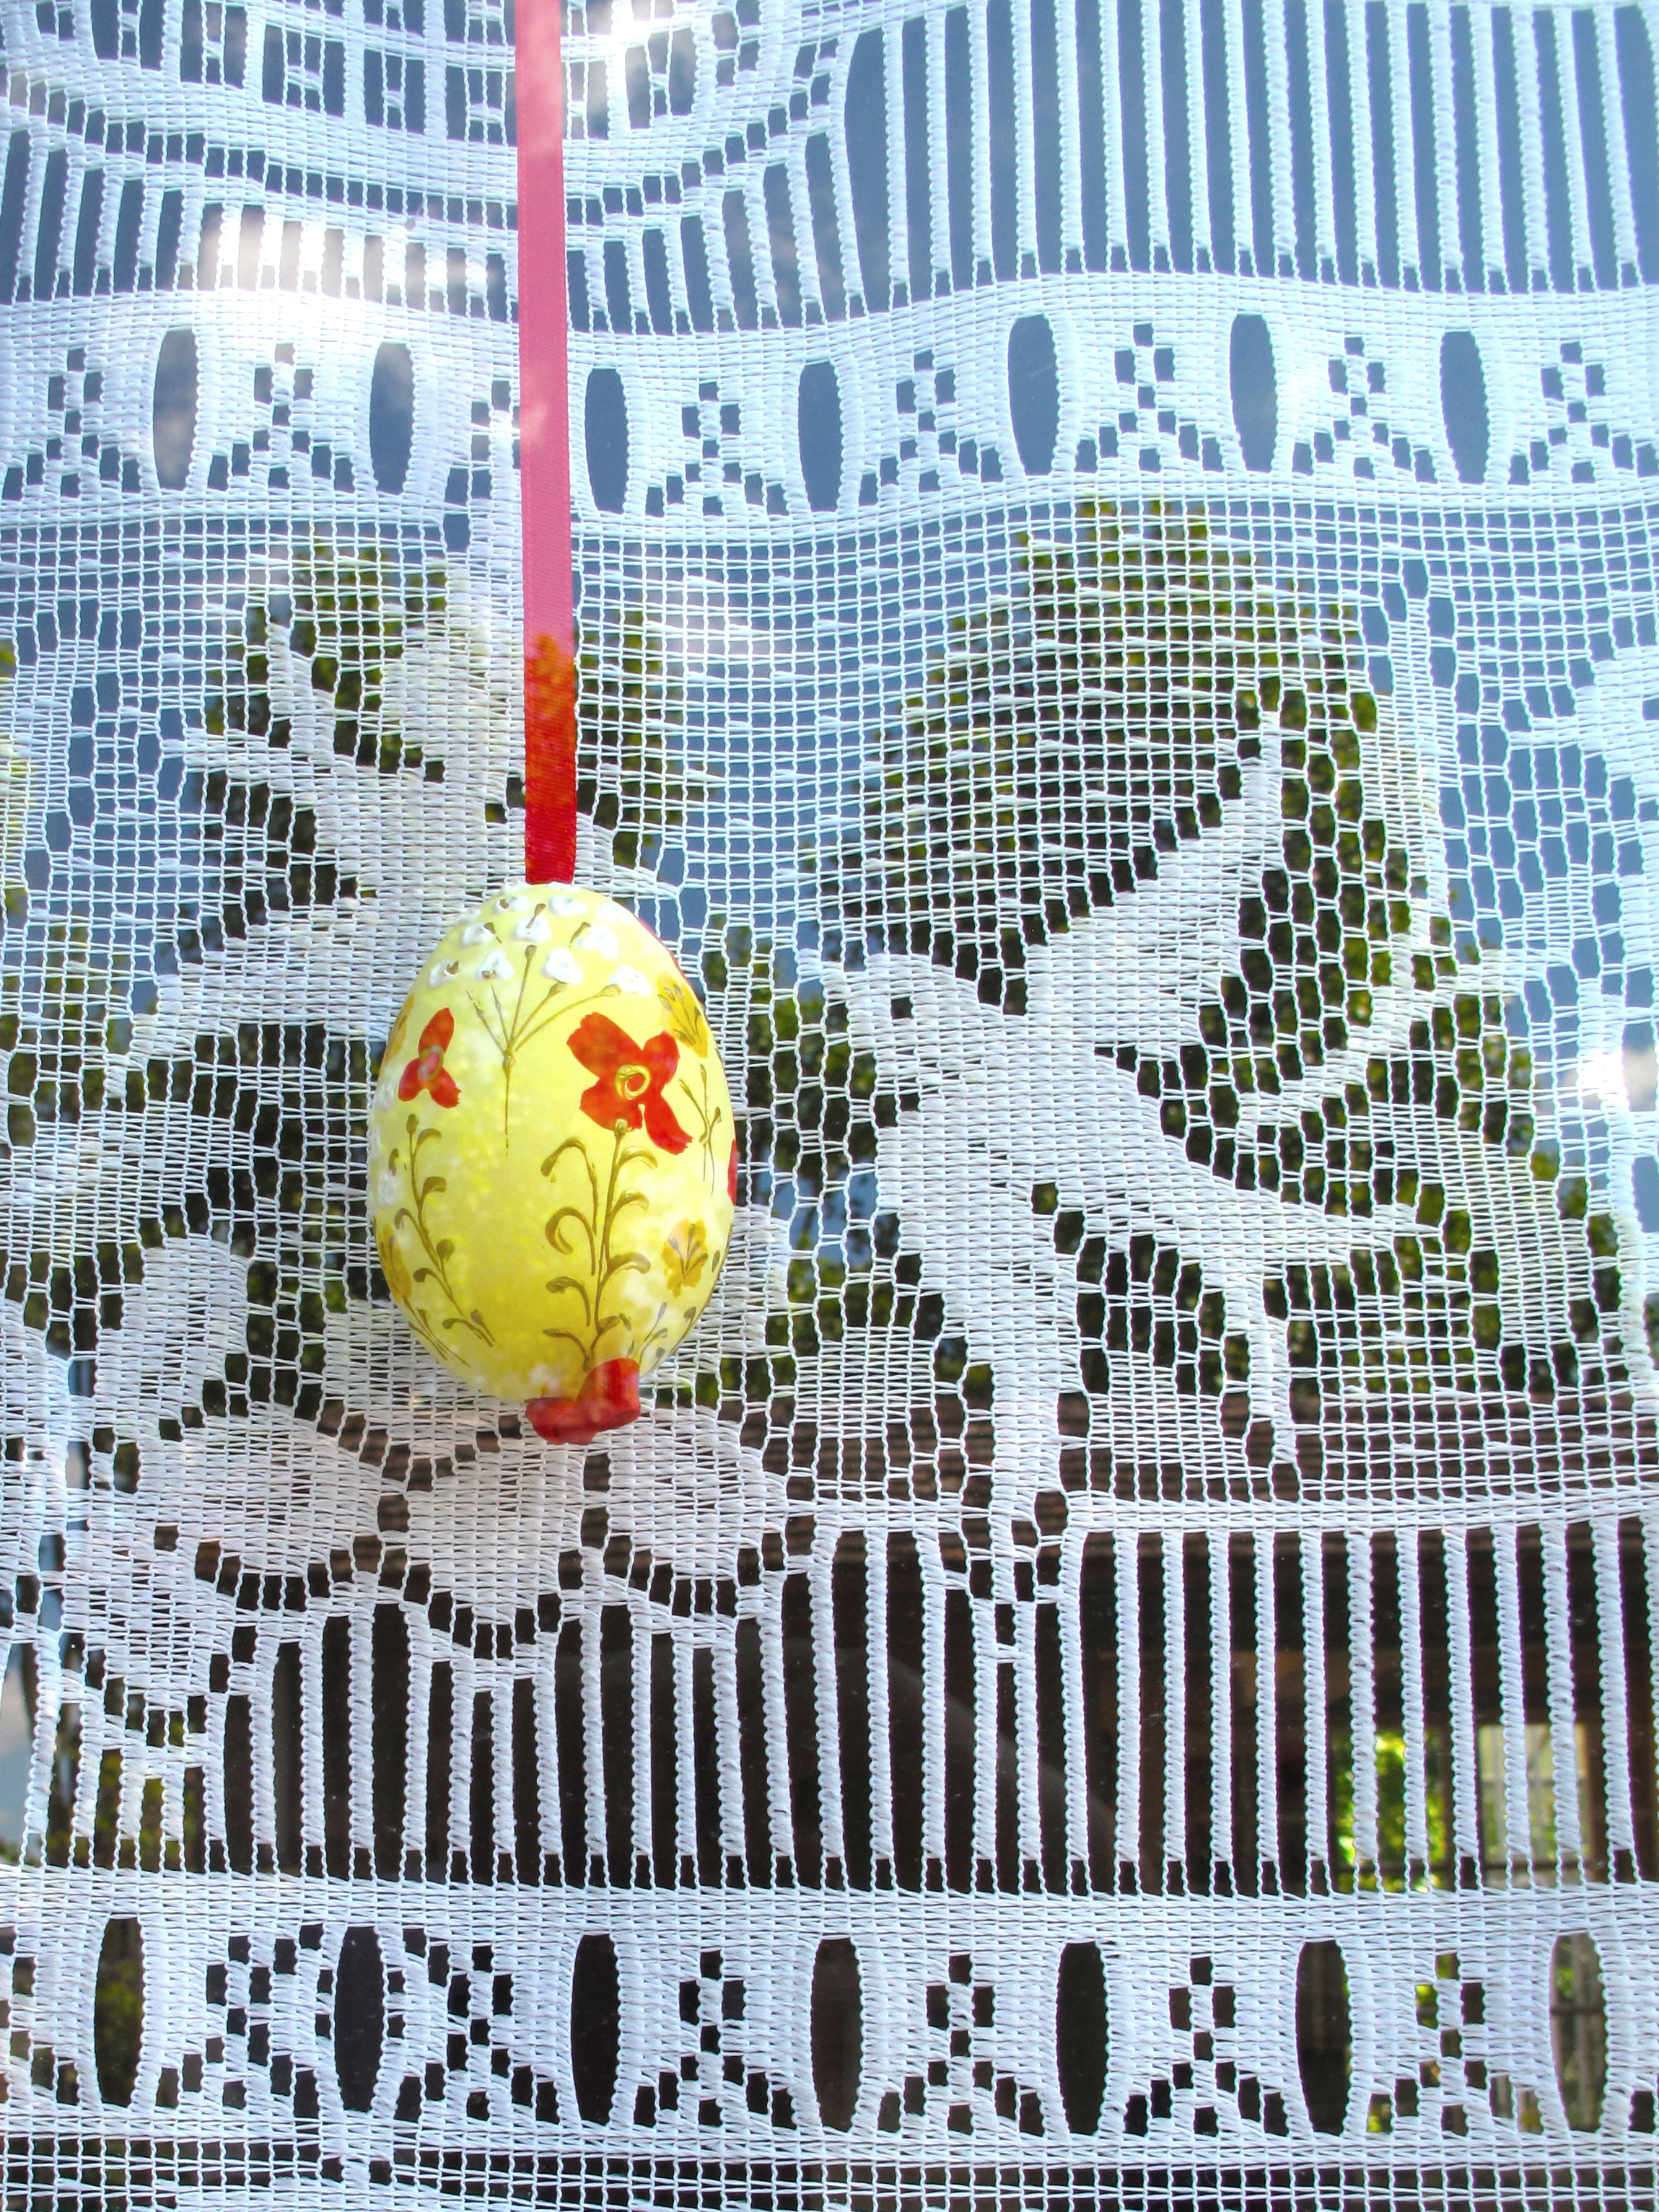 Easter eggs - blown and painted, in the window of an old house in Beauvais